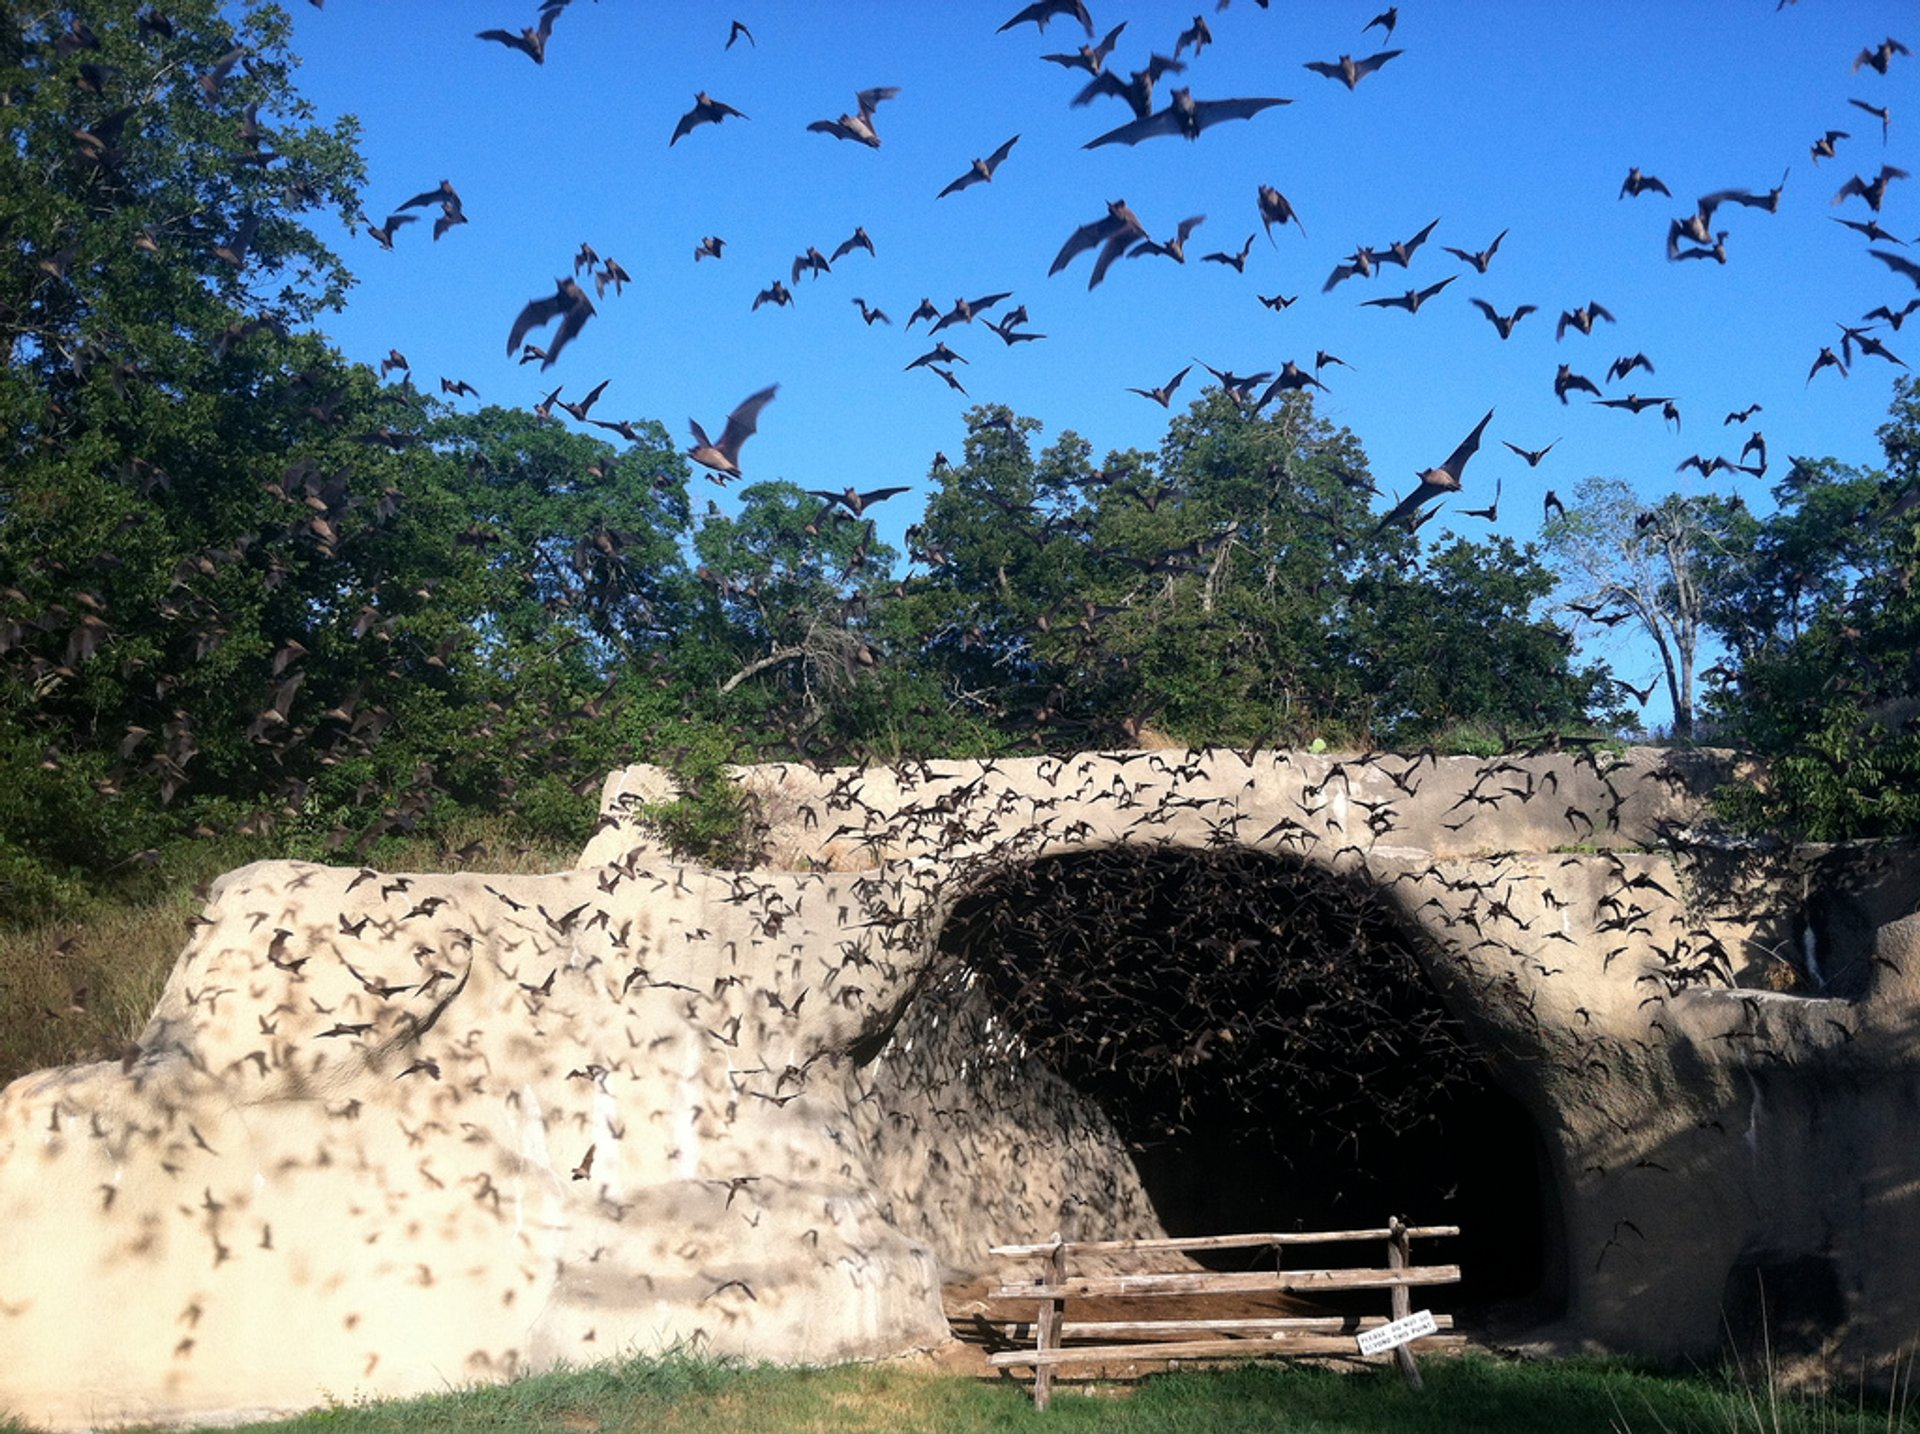 Bats emerging from Chiroptorium 2019